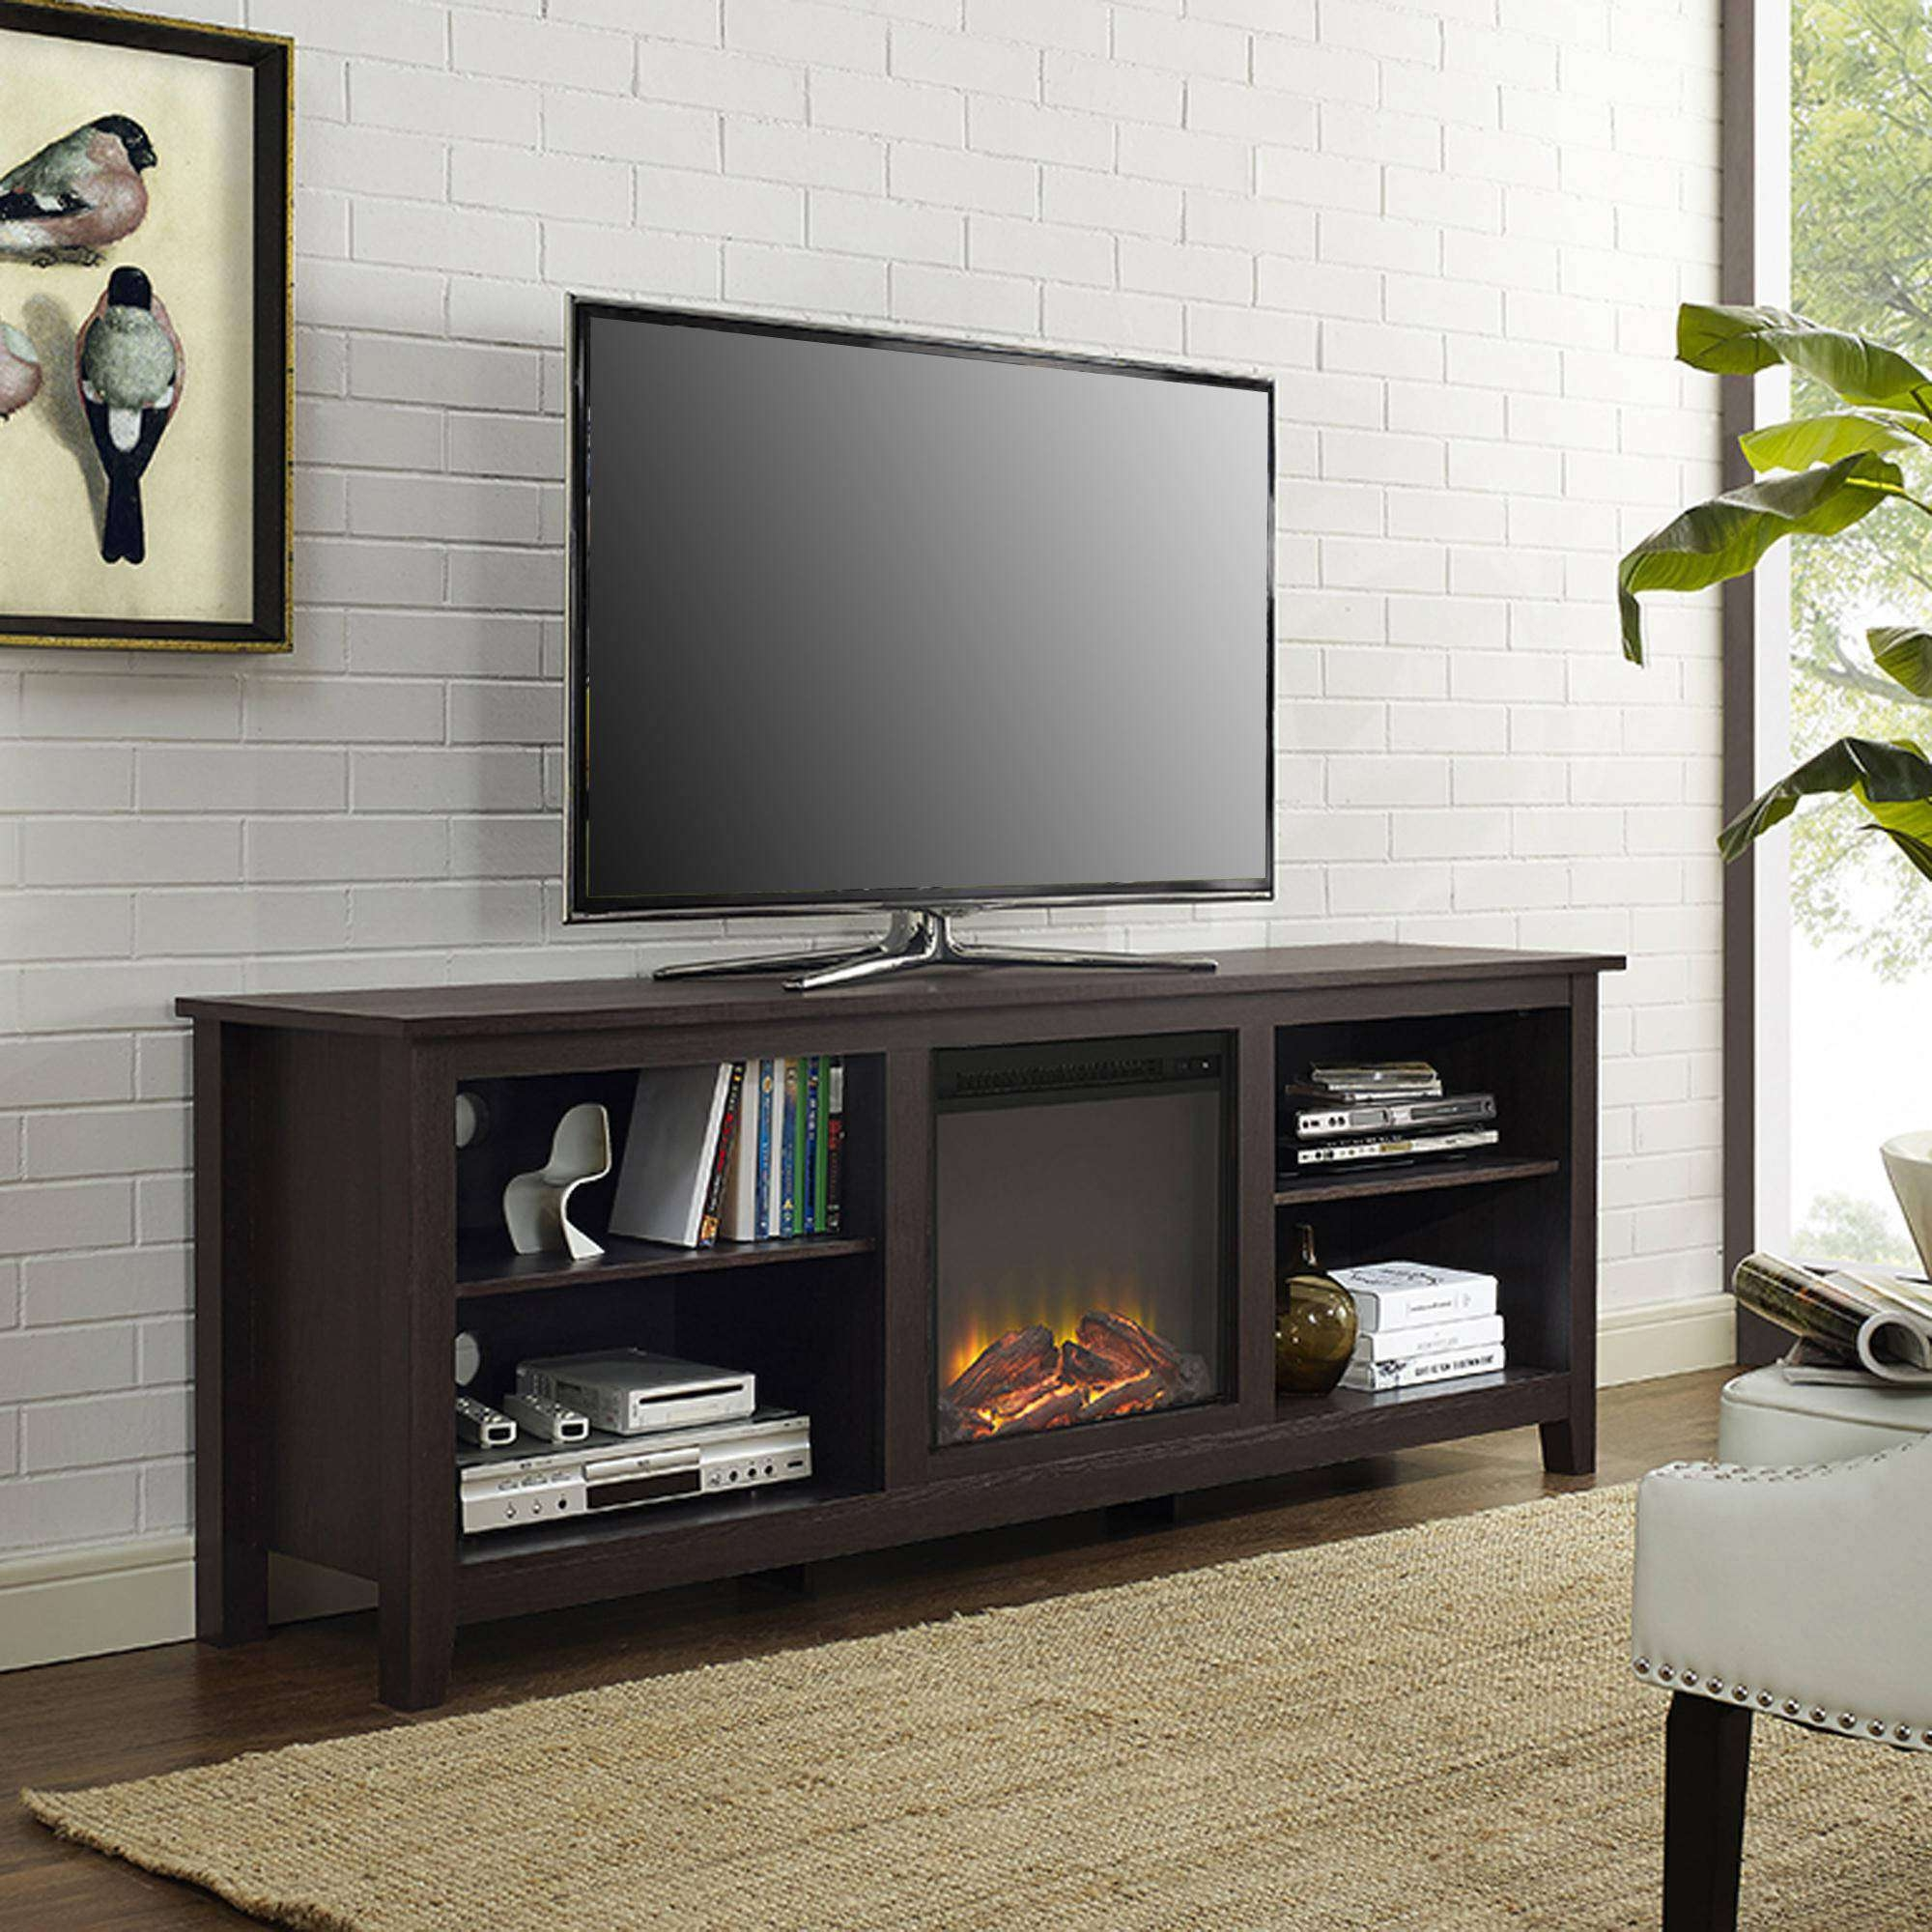 Walker Edison Wood Tv Stand With Fireplace, For Tvs Up To 70 In Tv Stands For 70 Inch Tvs (View 15 of 15)